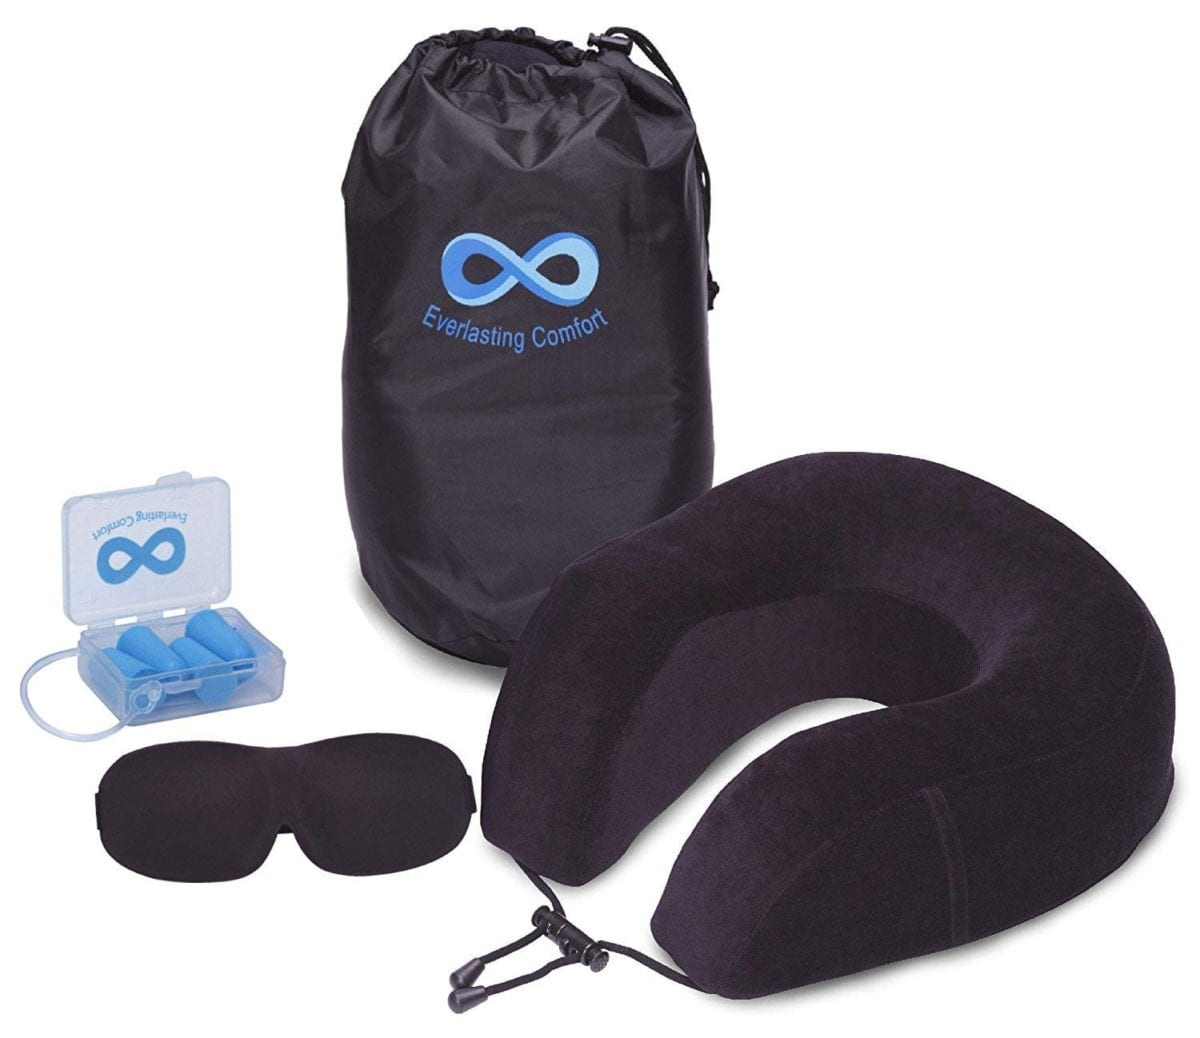 Everlasting Comfort 100% Pure Memory Foam Neck travel Pillow Airplane Travel Kit with Ultra Plush Velour Cover, Sleep Mask and Earplugs amazing gift ideas for travelers